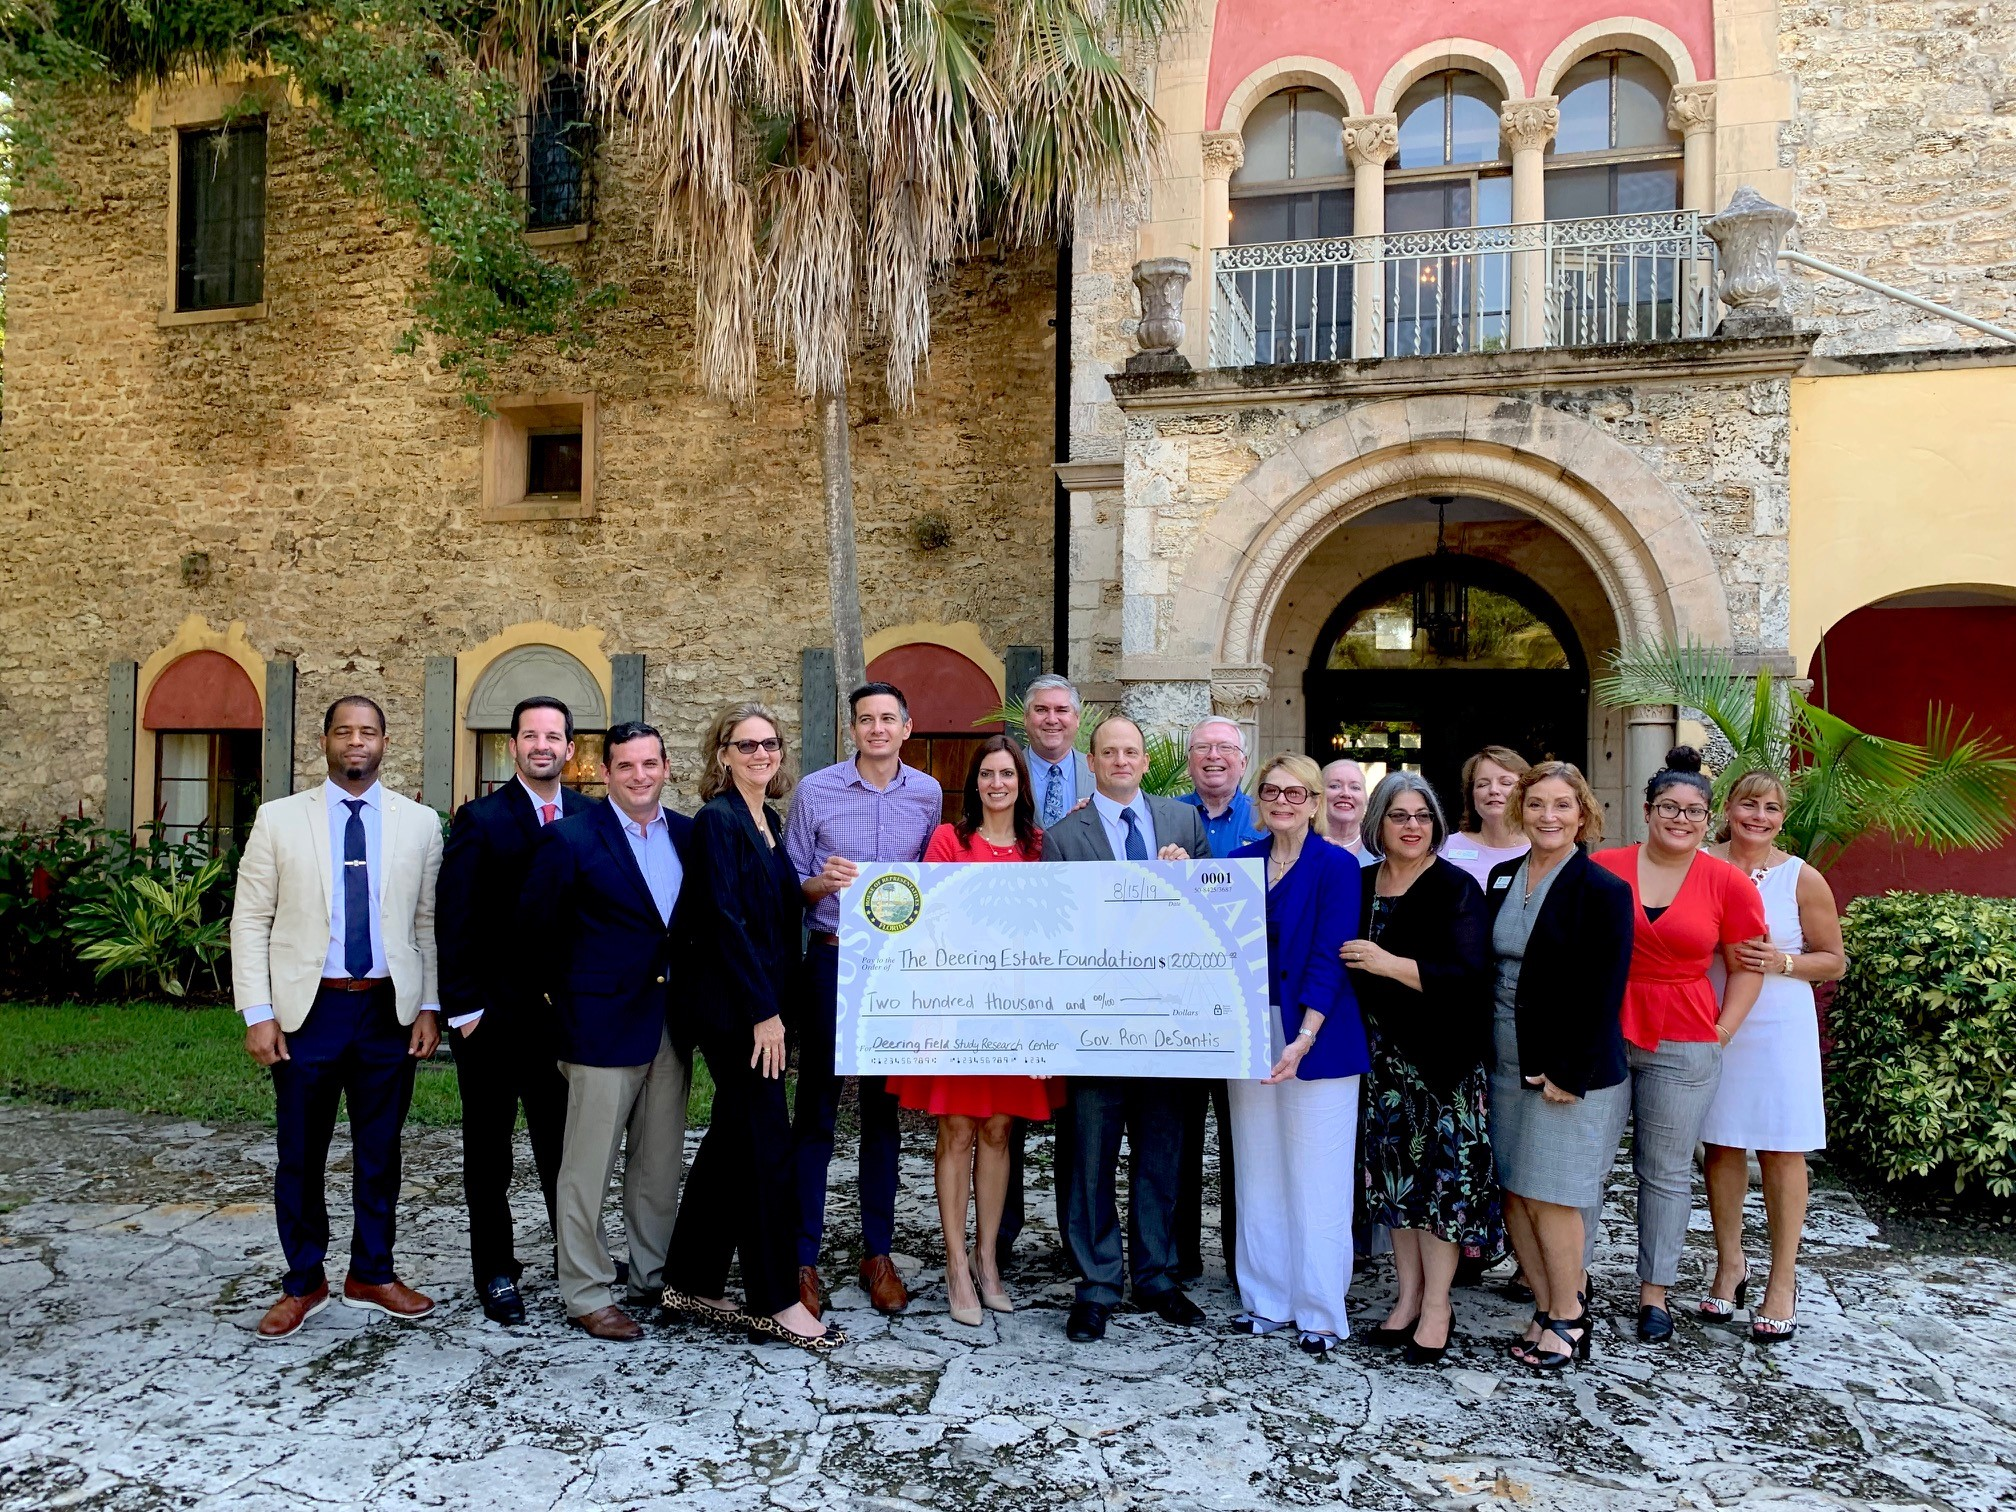 Deering Estate Foundation being presented with $200,000 for capital improvements